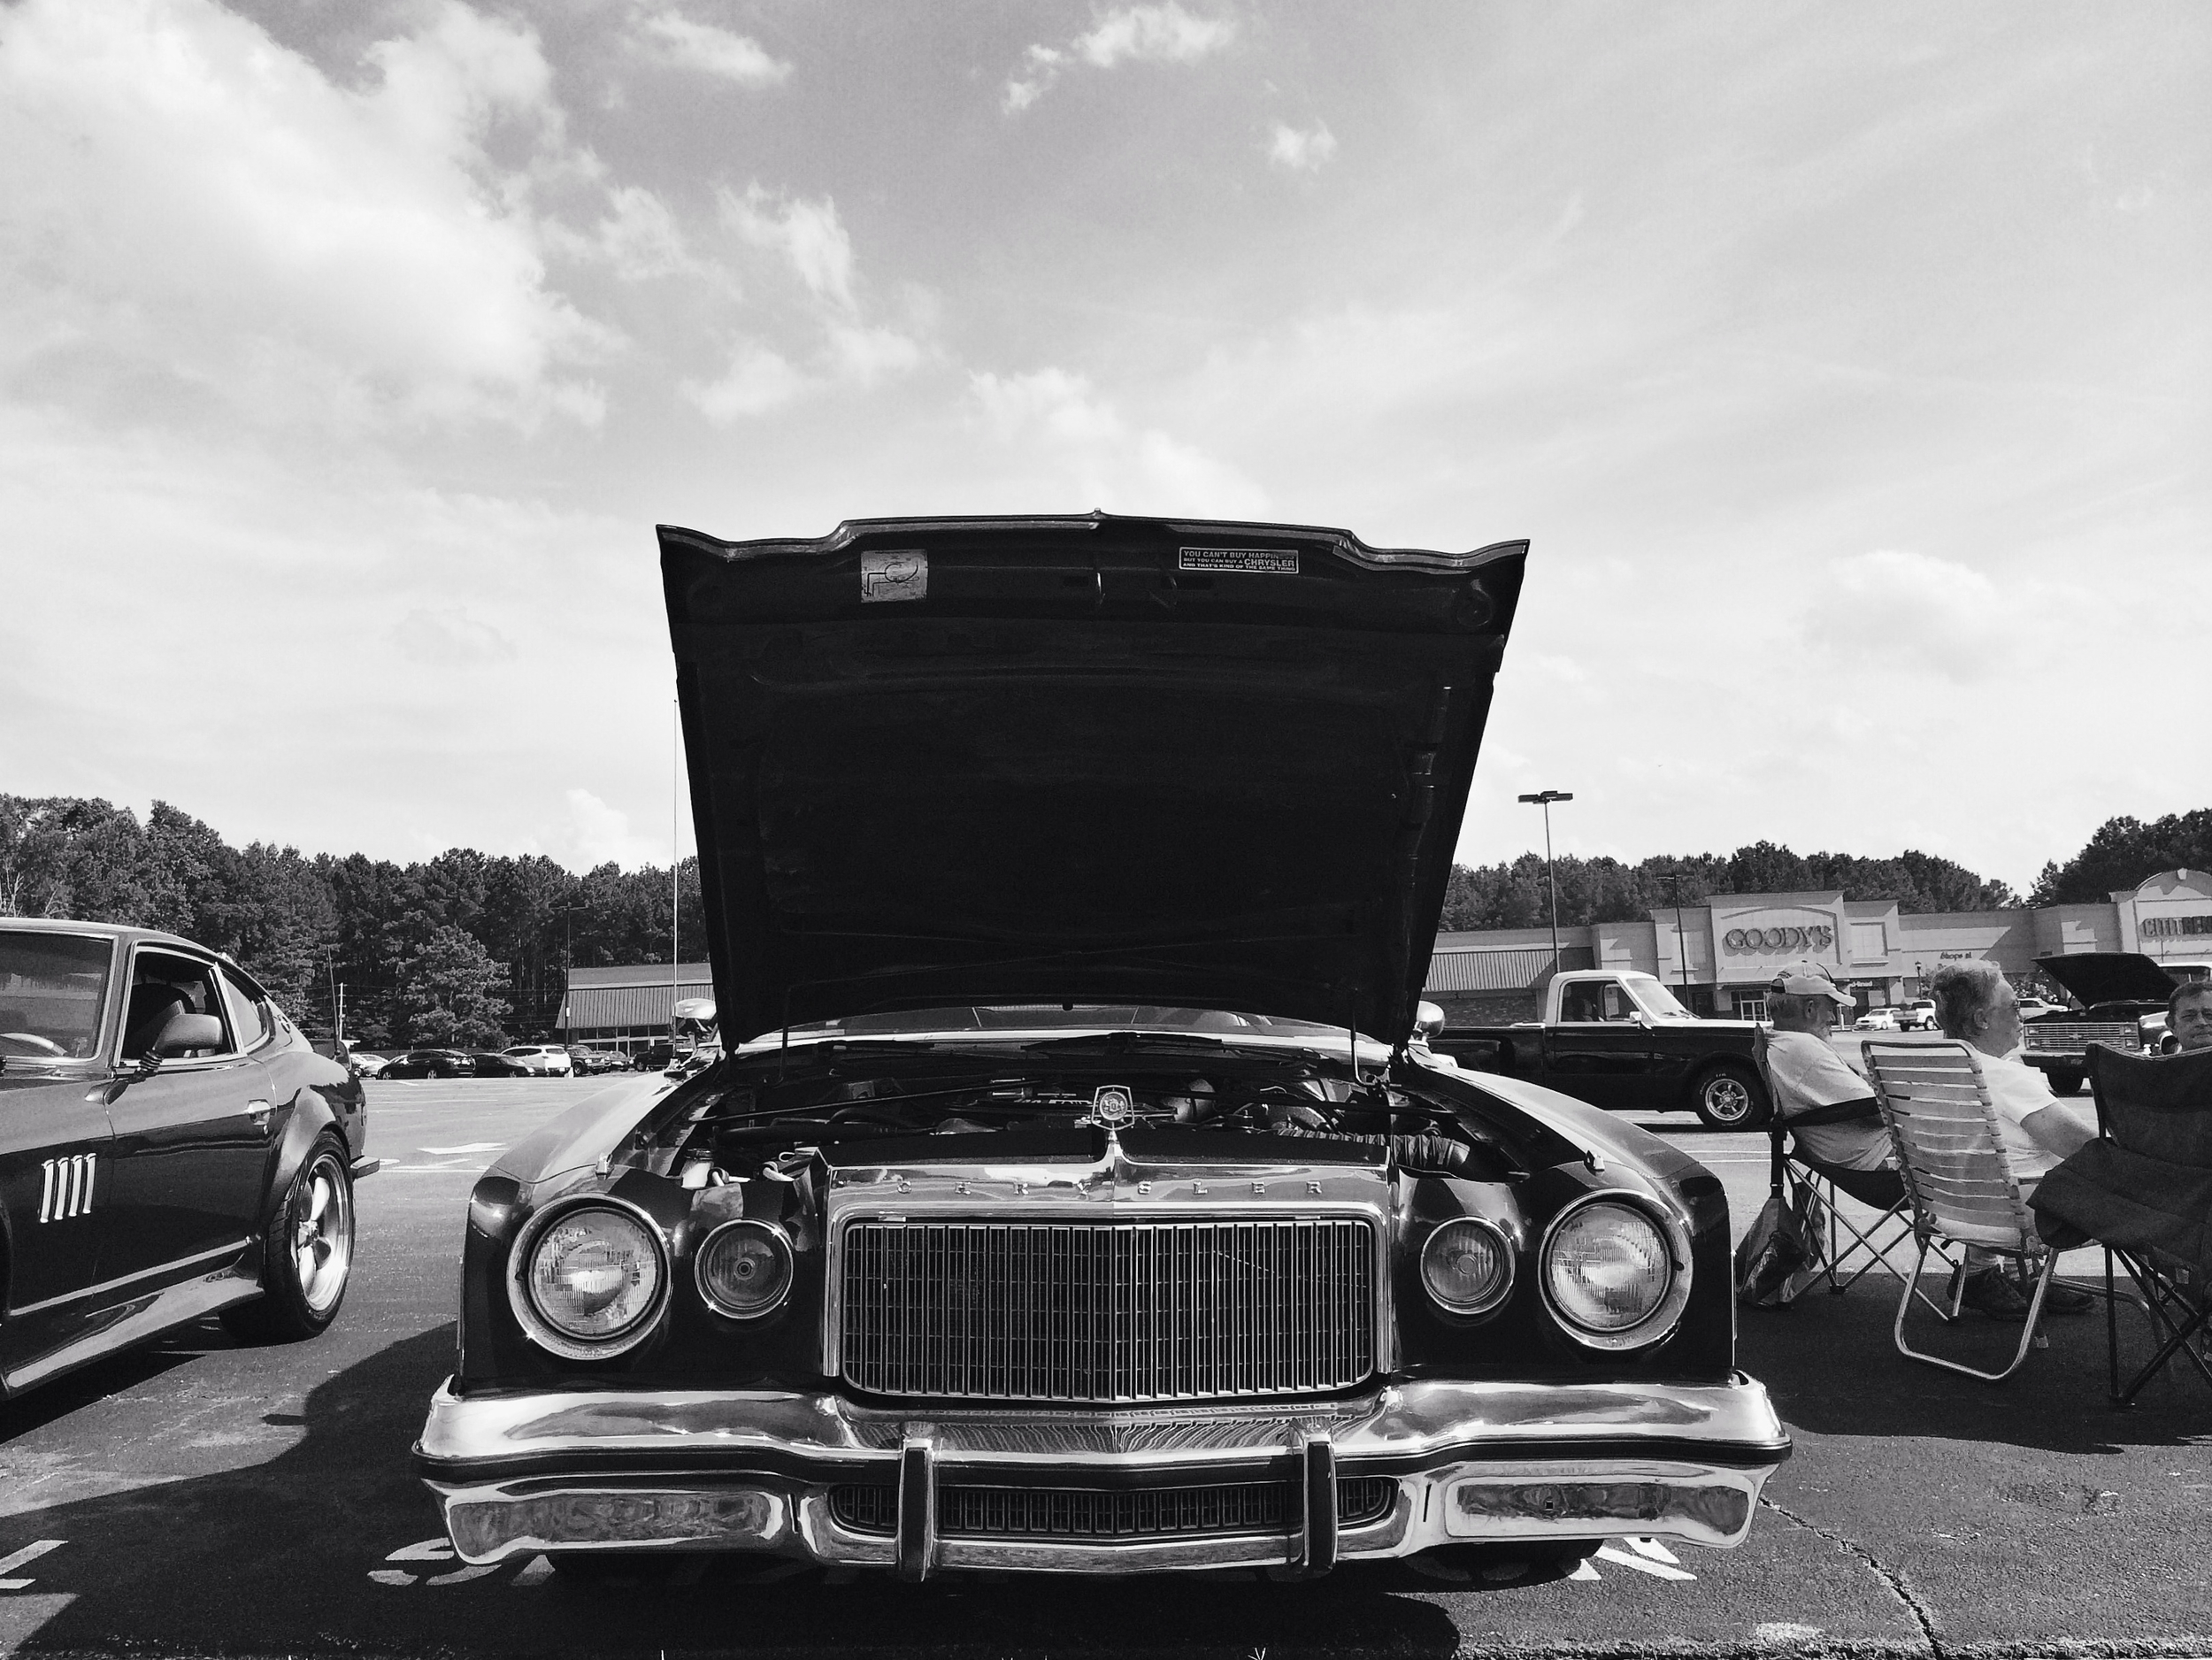 Classic cars exposed every Friday night in the Wendy's parking lot